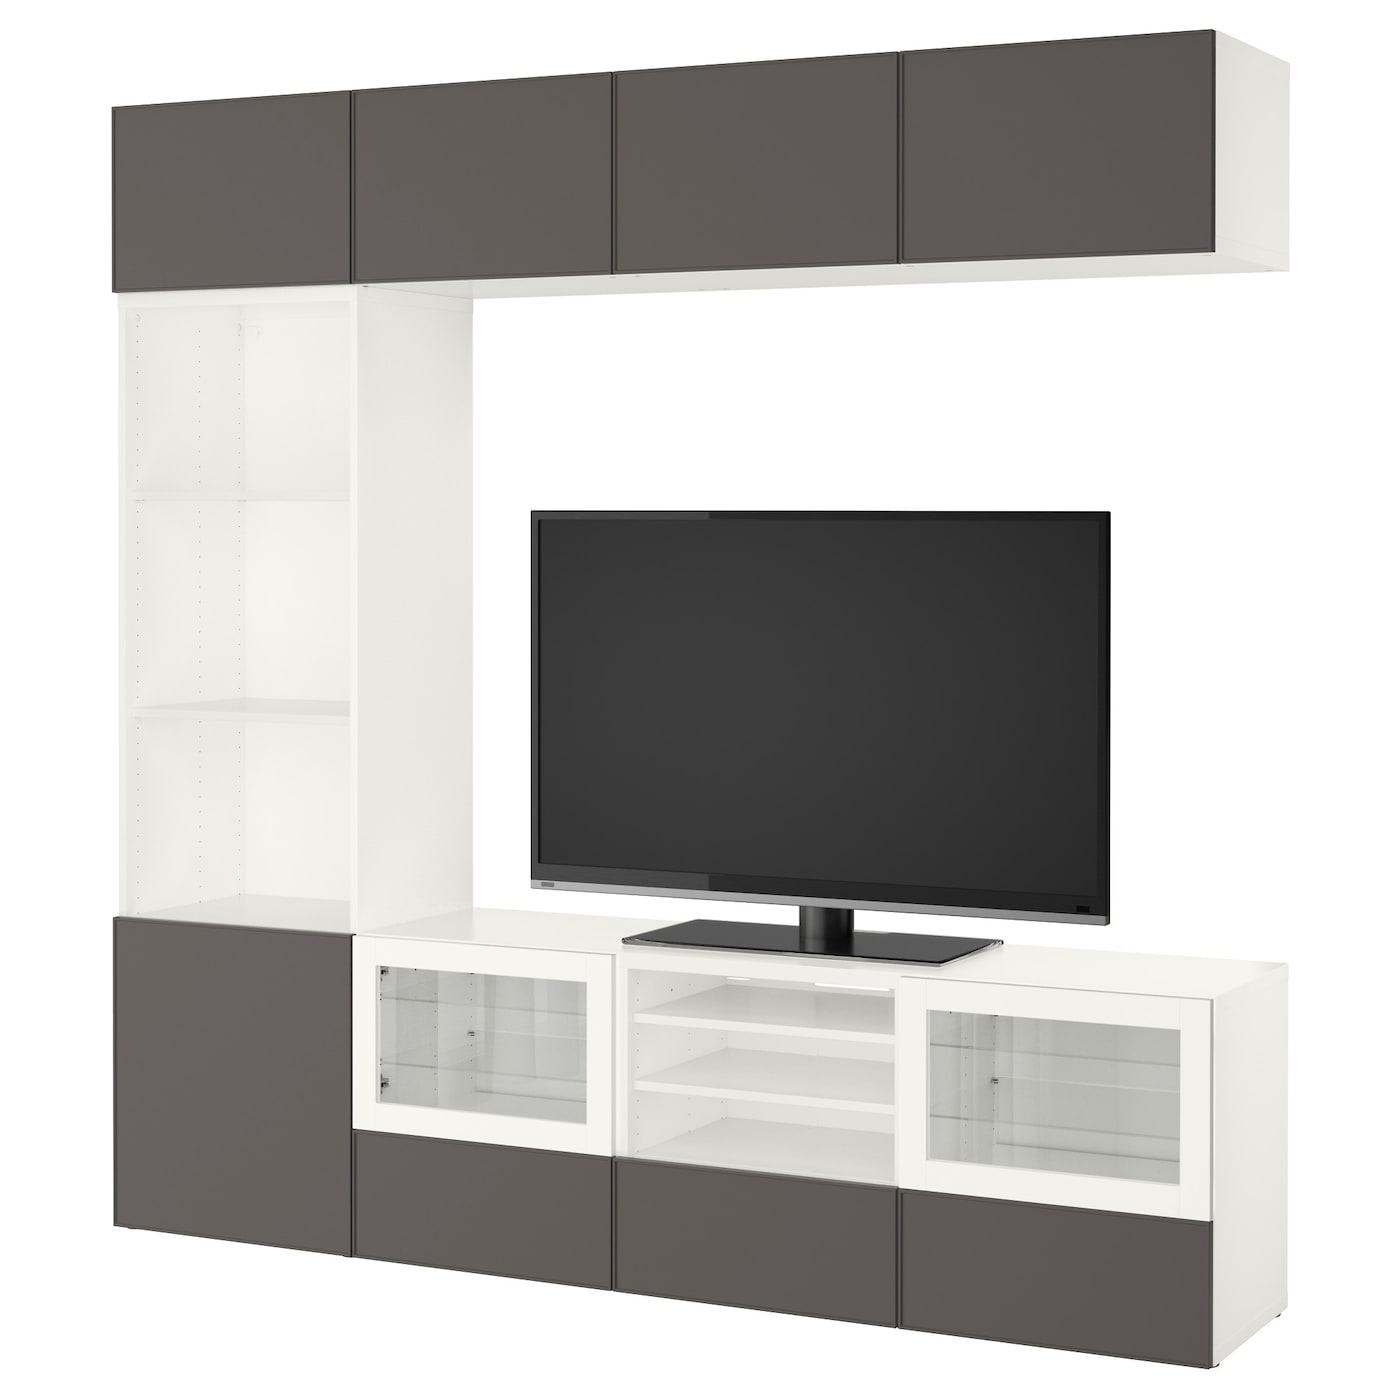 best tv storage combination glass doors white grundsviken. Black Bedroom Furniture Sets. Home Design Ideas